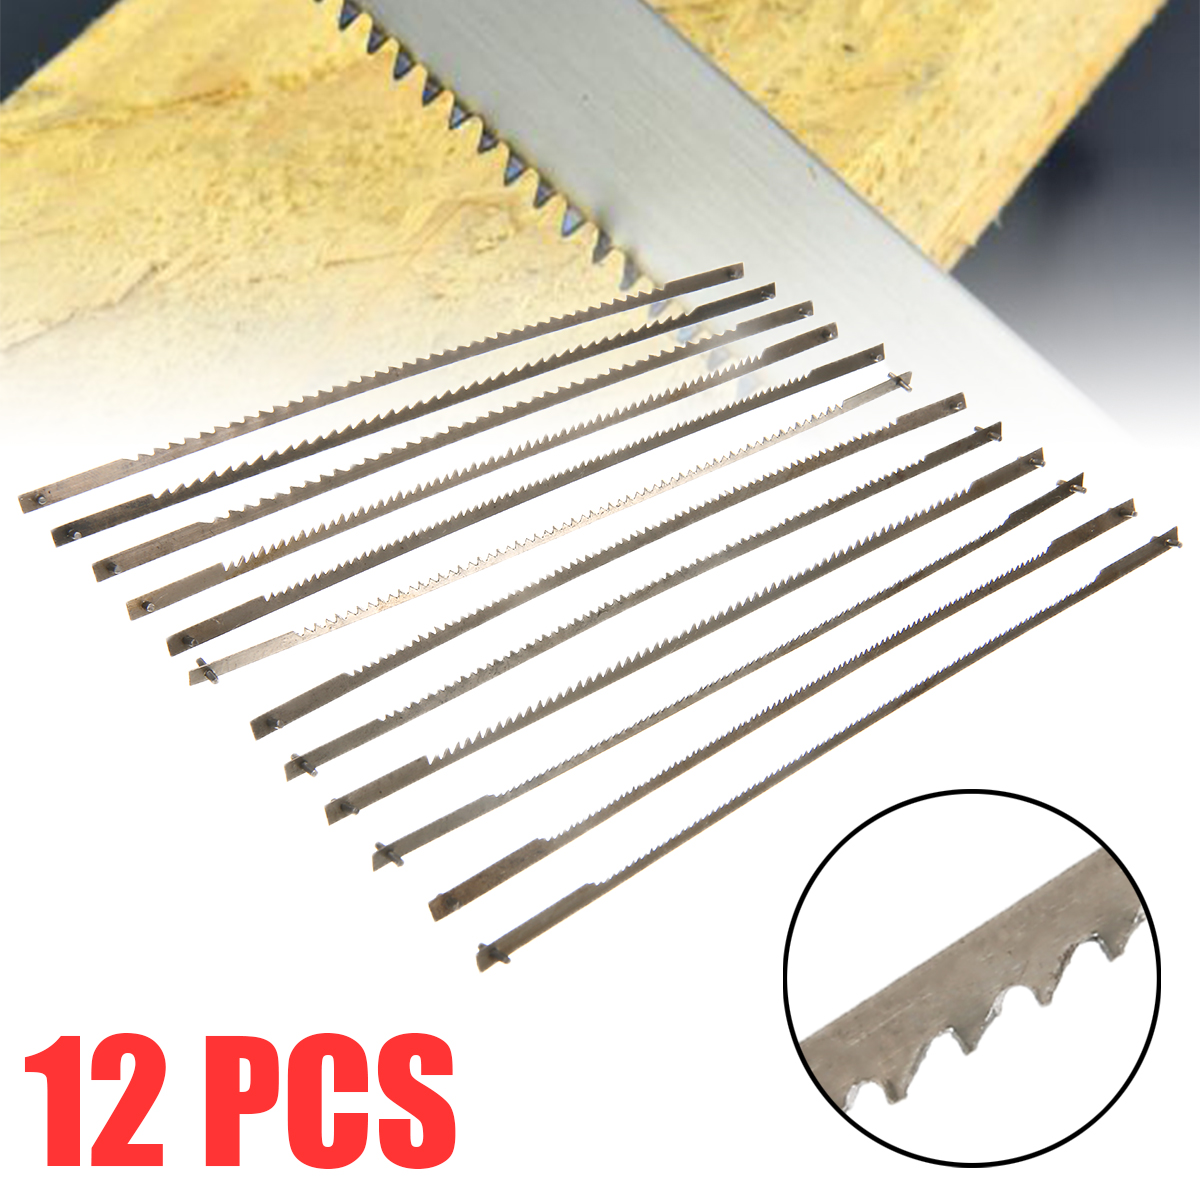 """12pcs 5"""" 10/15/18/24 Teeth Pinned Scroll Saw Blades Woodworking Saw Blades Power Tools Accessories"""